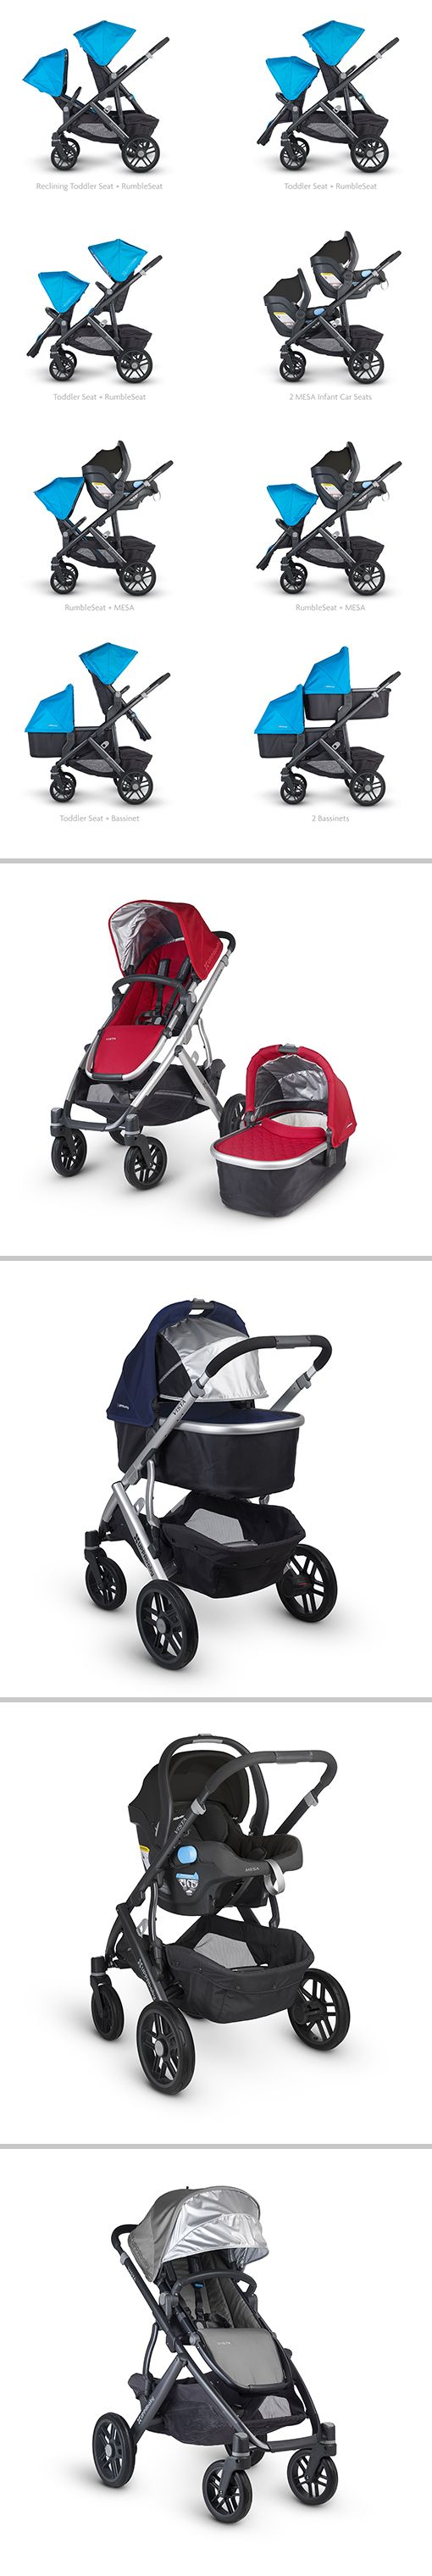 VISTA: A Single, Double and Triple Stroller - All in One. The Vista's intuitive design allows for multiple configurations, making transporting a second and third child a breeze. Life moves pretty fast. We say you've just got to roll with it.